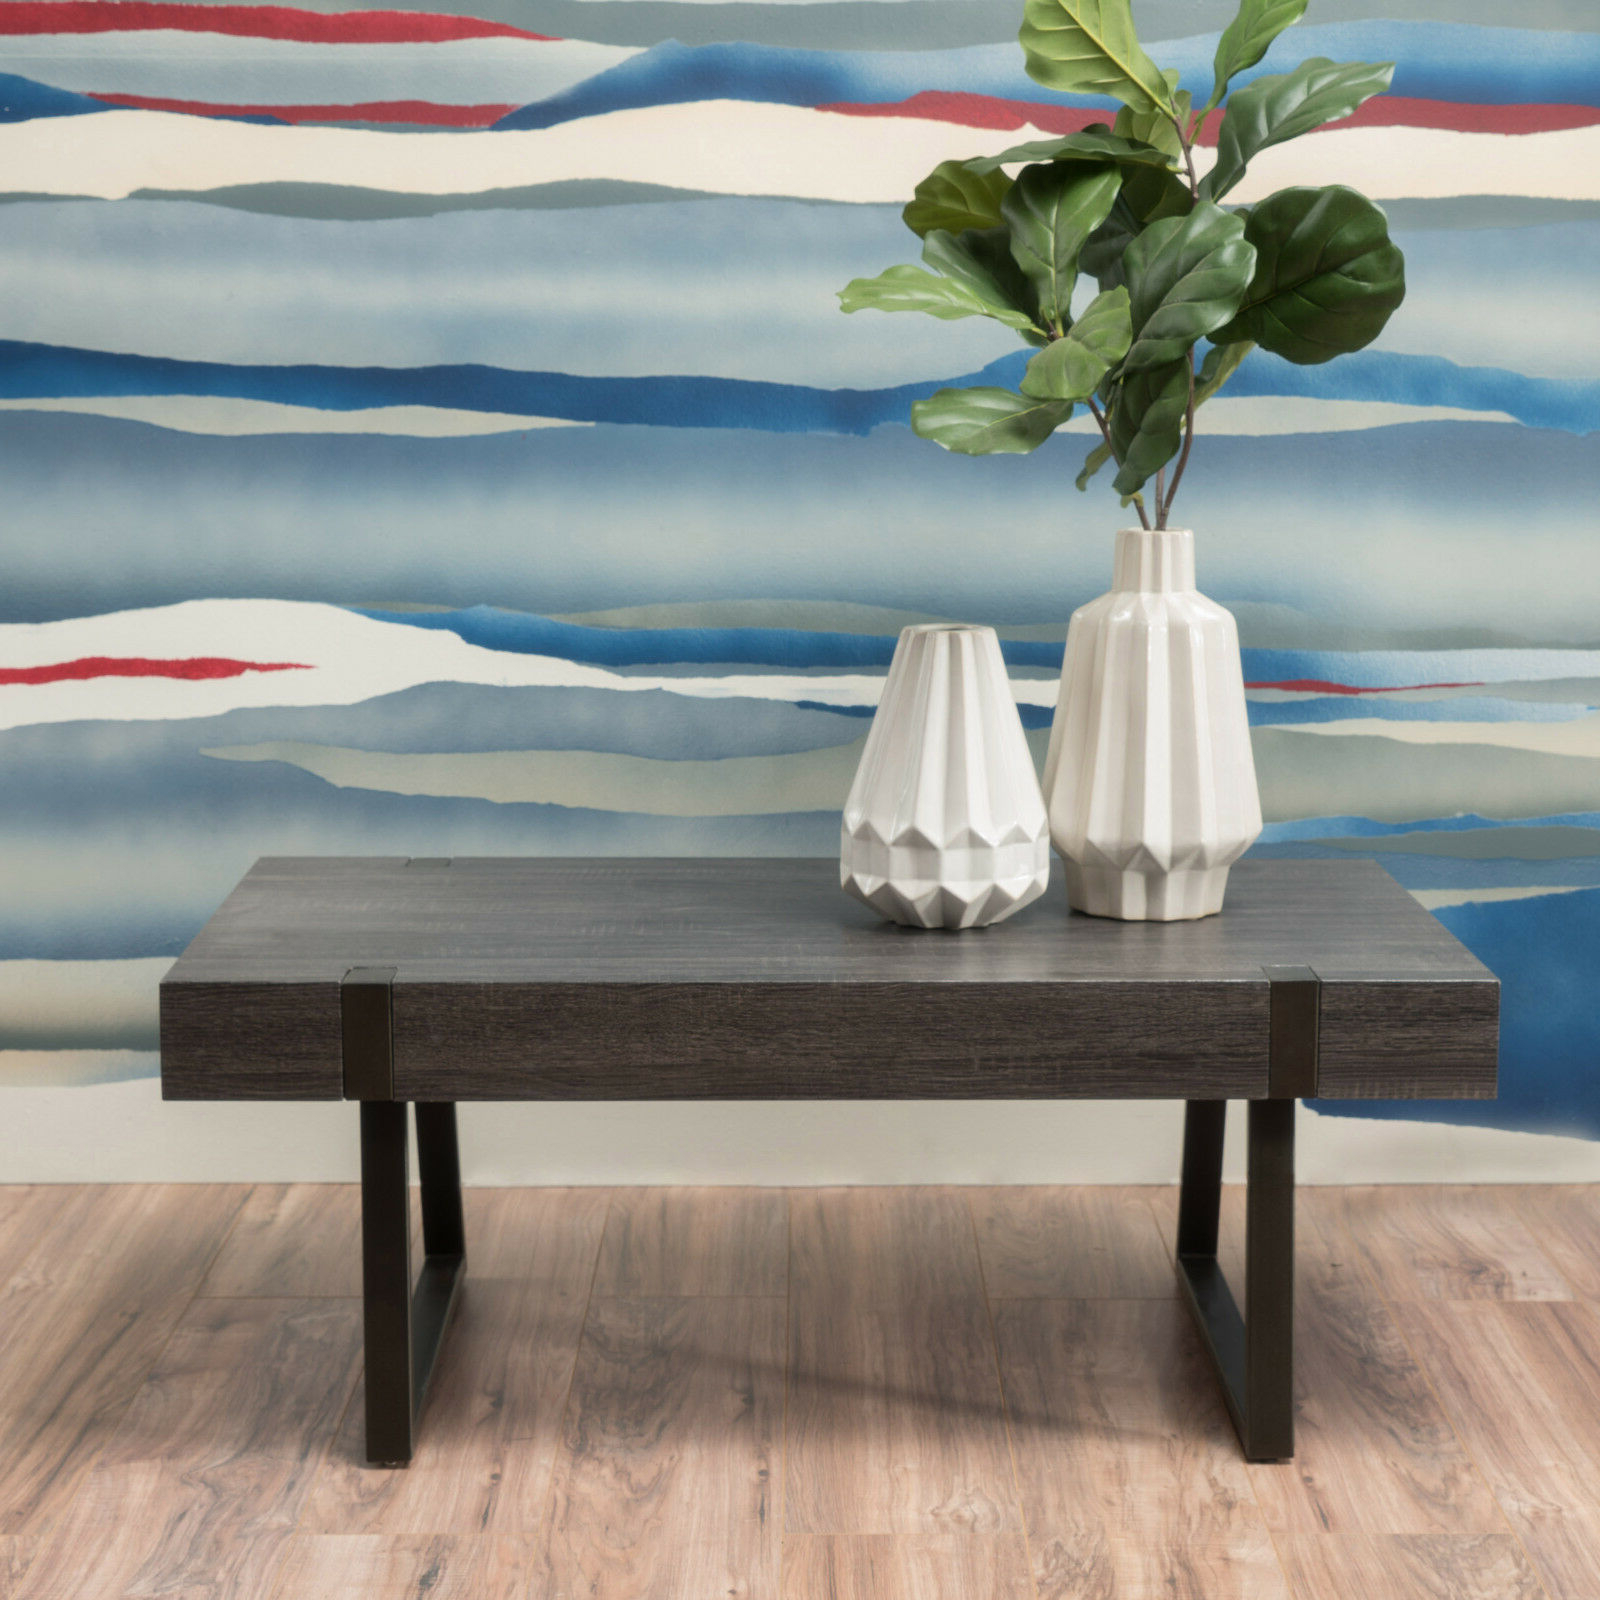 Genwa Wood Coffee Table For Well Known Safavieh Anwen Geometric Wood Coffee Tables (View 13 of 20)